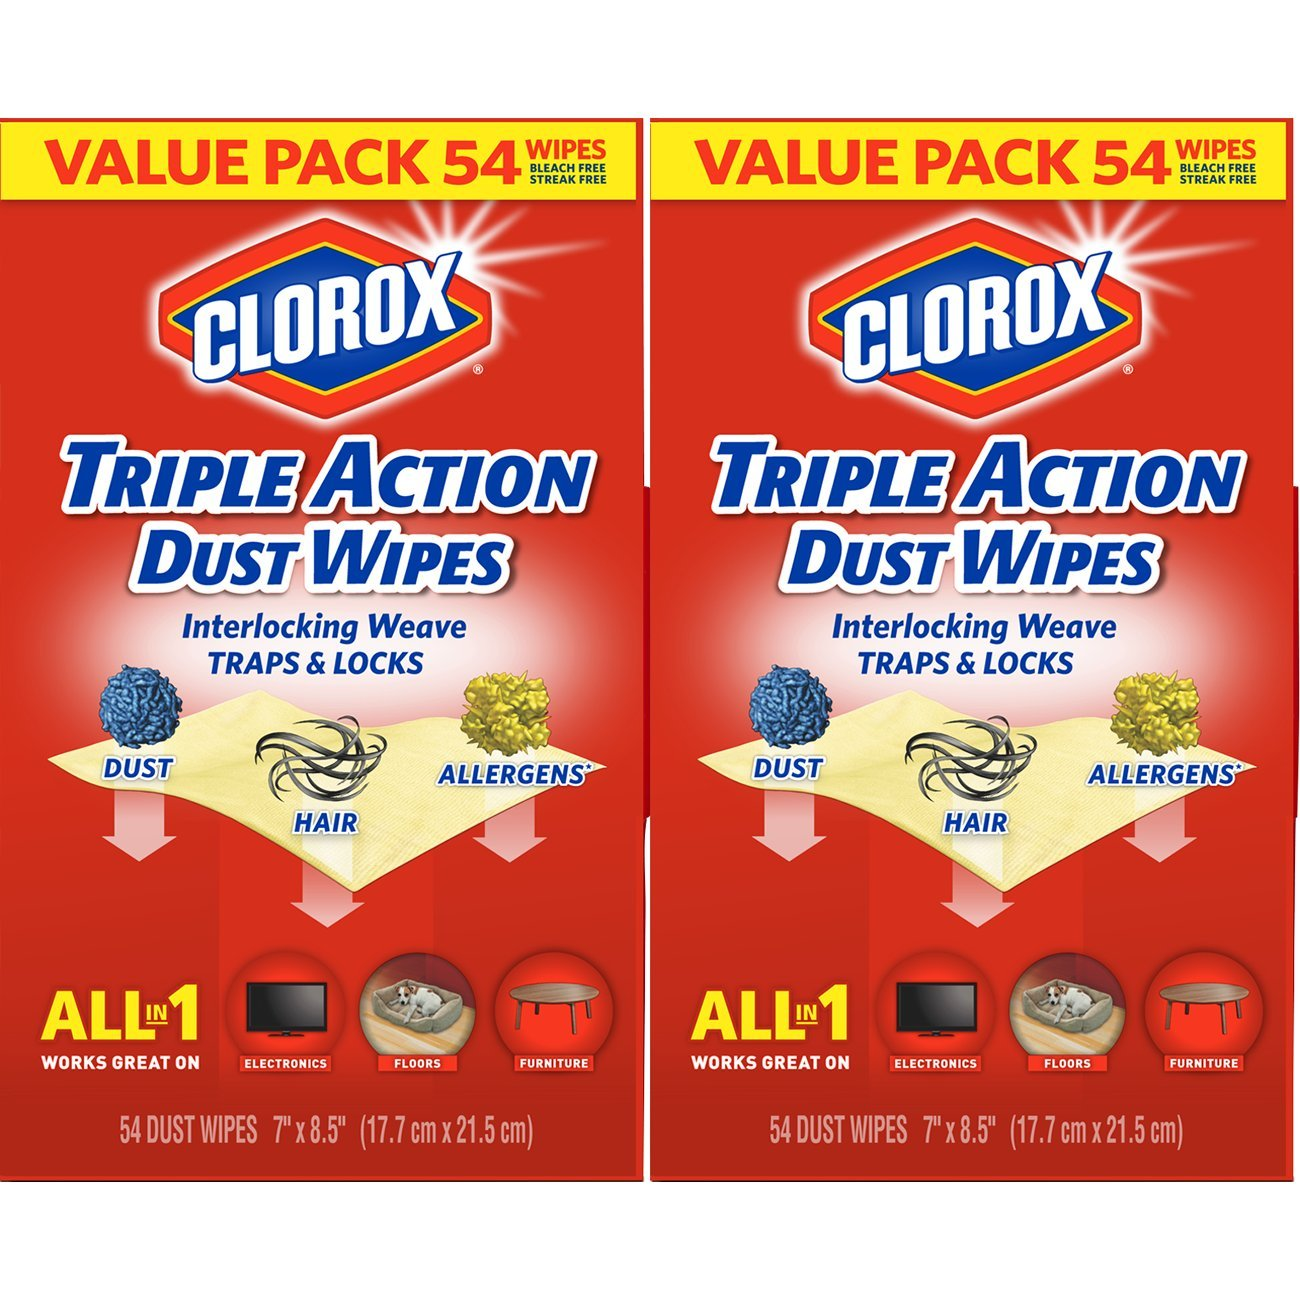 Clorox Triple Action Dust Wipes, Bleach Free Cleaning Wipes - 54 Count Each (Pack of 2) by Clorox Dust Wipes